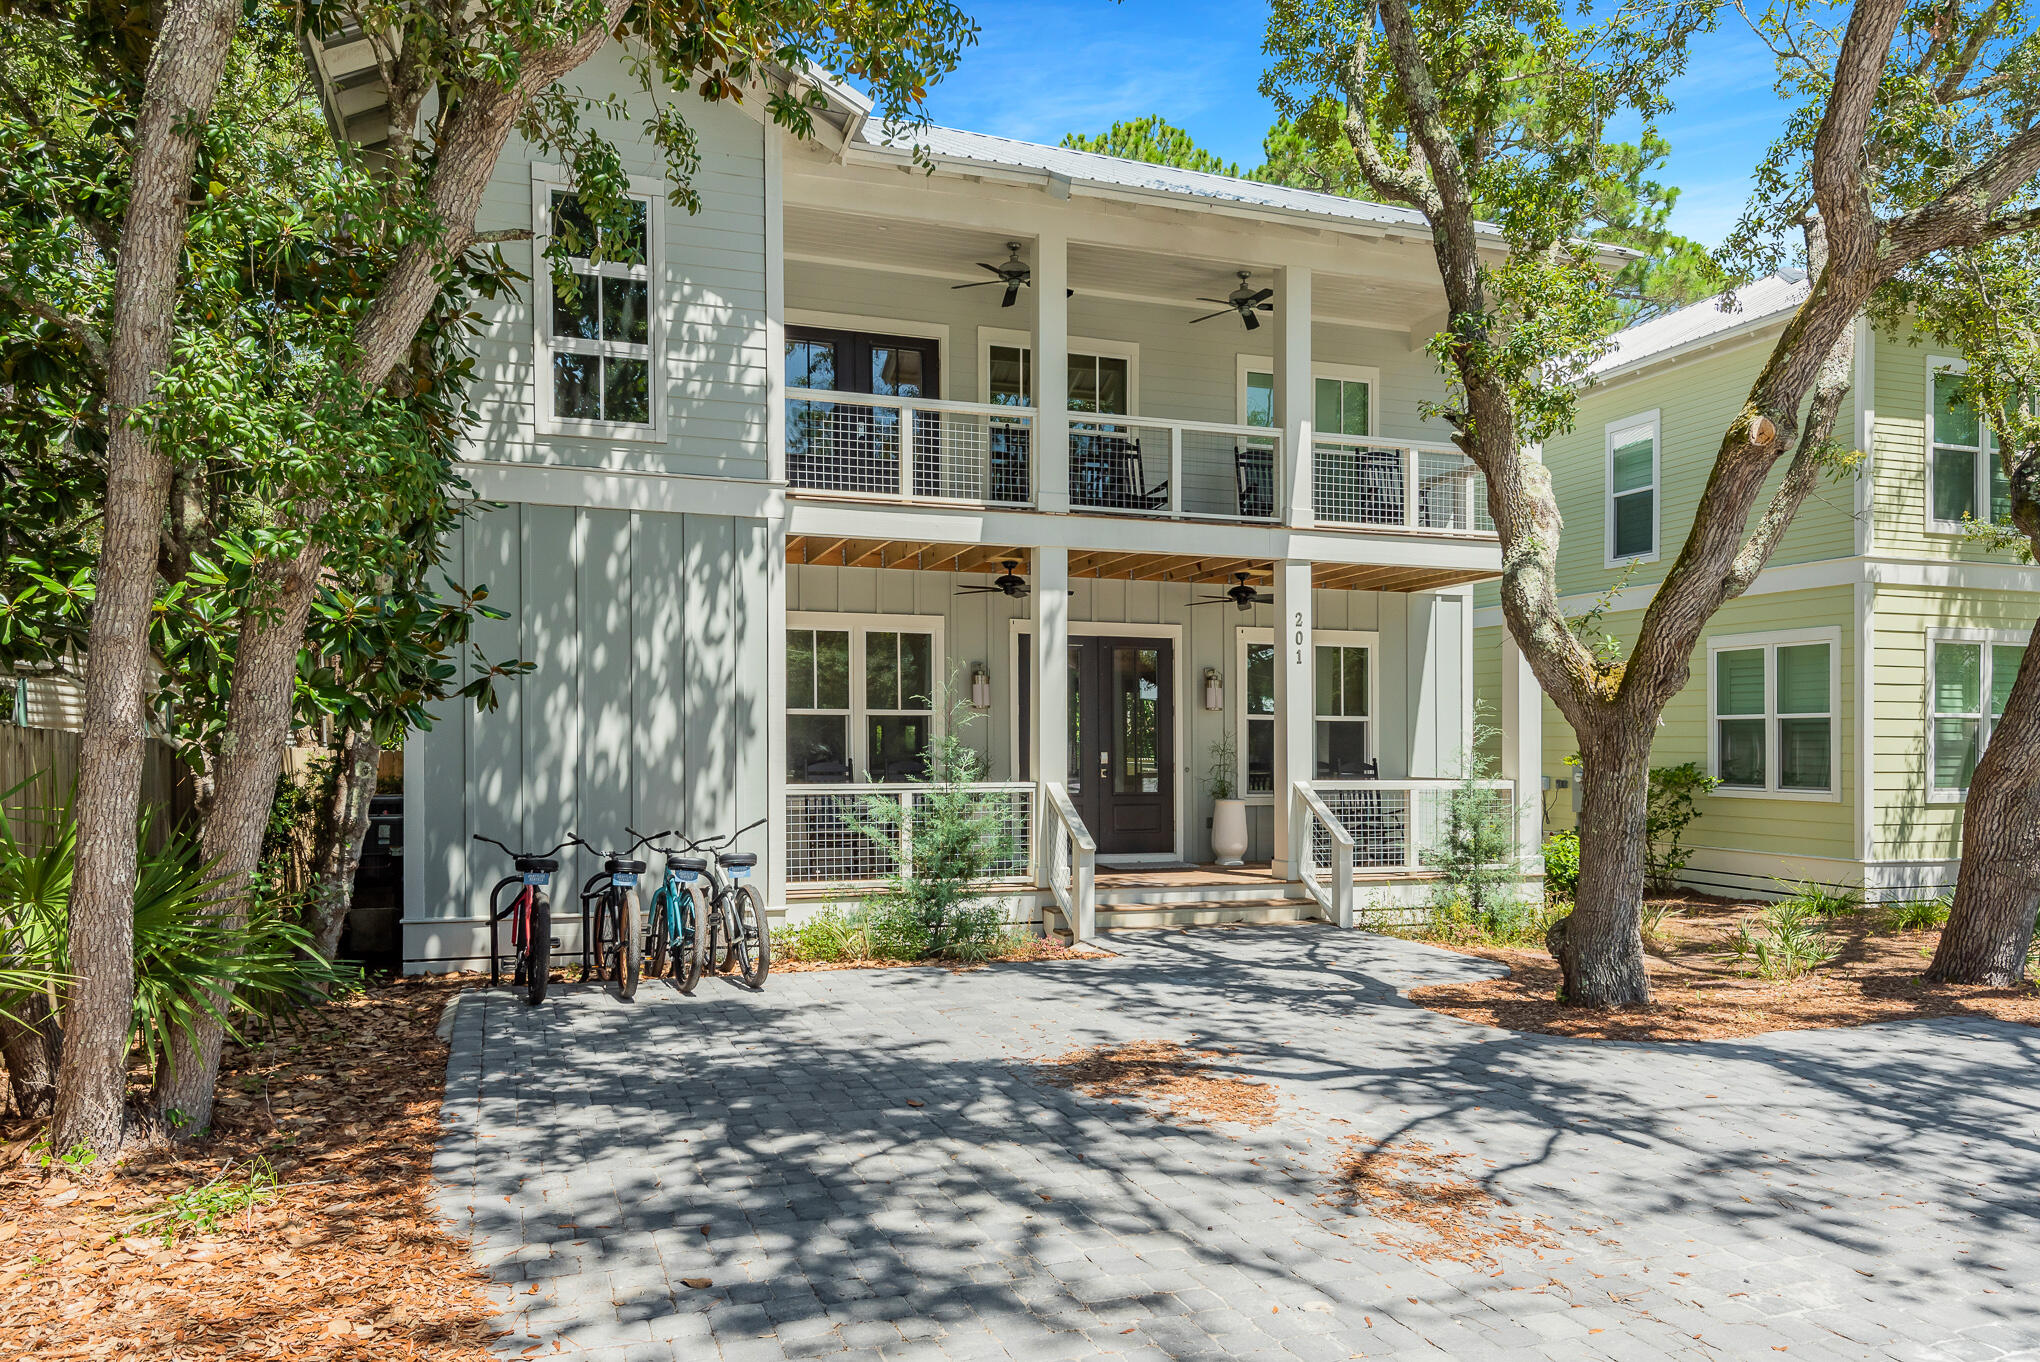 Charming quintessential Grayton Beach abode offering everything that encompasses the Grayton lifestyle.  Craftsman architecture showcasing custom trim-work, walnut flooring, wood shiplap accent walls and quartz countertops exemplify this 30A property. 201 Defuniak Street features 4 bedrooms, 3 full bathrooms, 1 half bathroom, a private pool and outstanding outdoor living. Enjoy relaxing afternoons on one of the many porches found on the home. Situated in the heart of 30A and steps to the sugar-white sands; luxury dining, high-end shopping and world-class entertainment is a walk away. Offered fully furnished, this cottage creates the perfect second home, permanent residence or investment property.  Opportunities in Grayton are rare, do not miss the chance to make this your paradise!